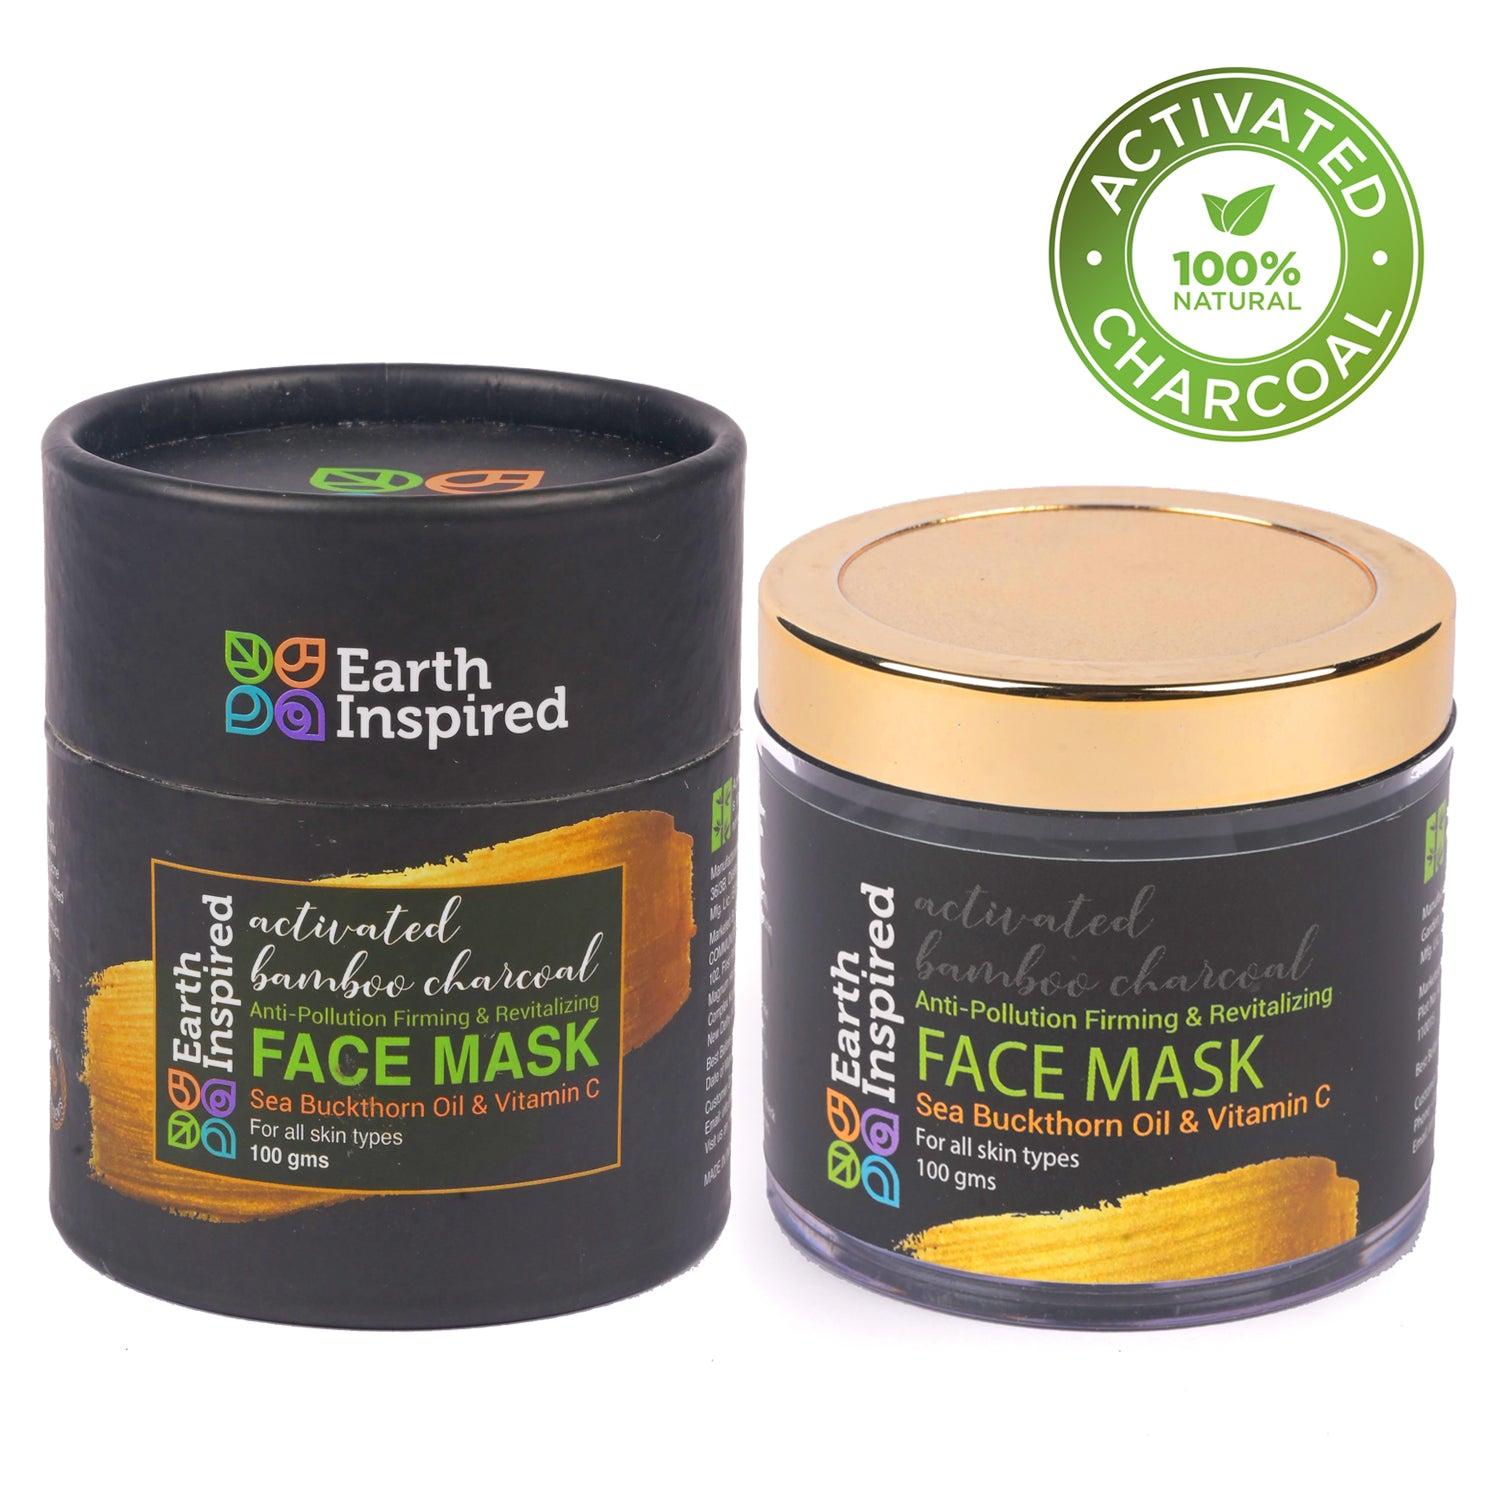 Activated Bamboo Charcoal Face Mask by Earth Inspired